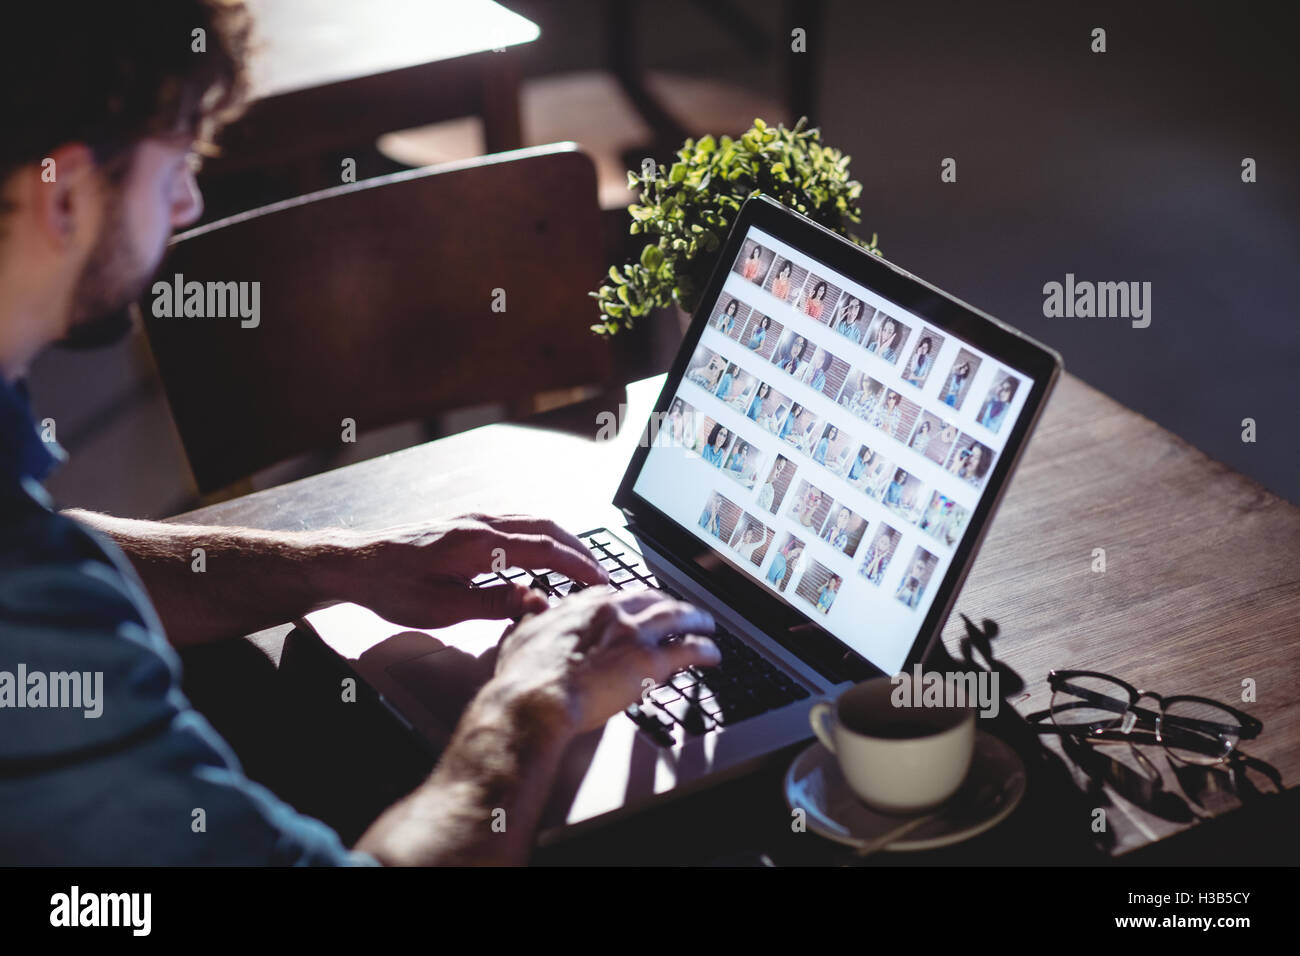 High angle view of man working on laptop at cafe - Stock Image